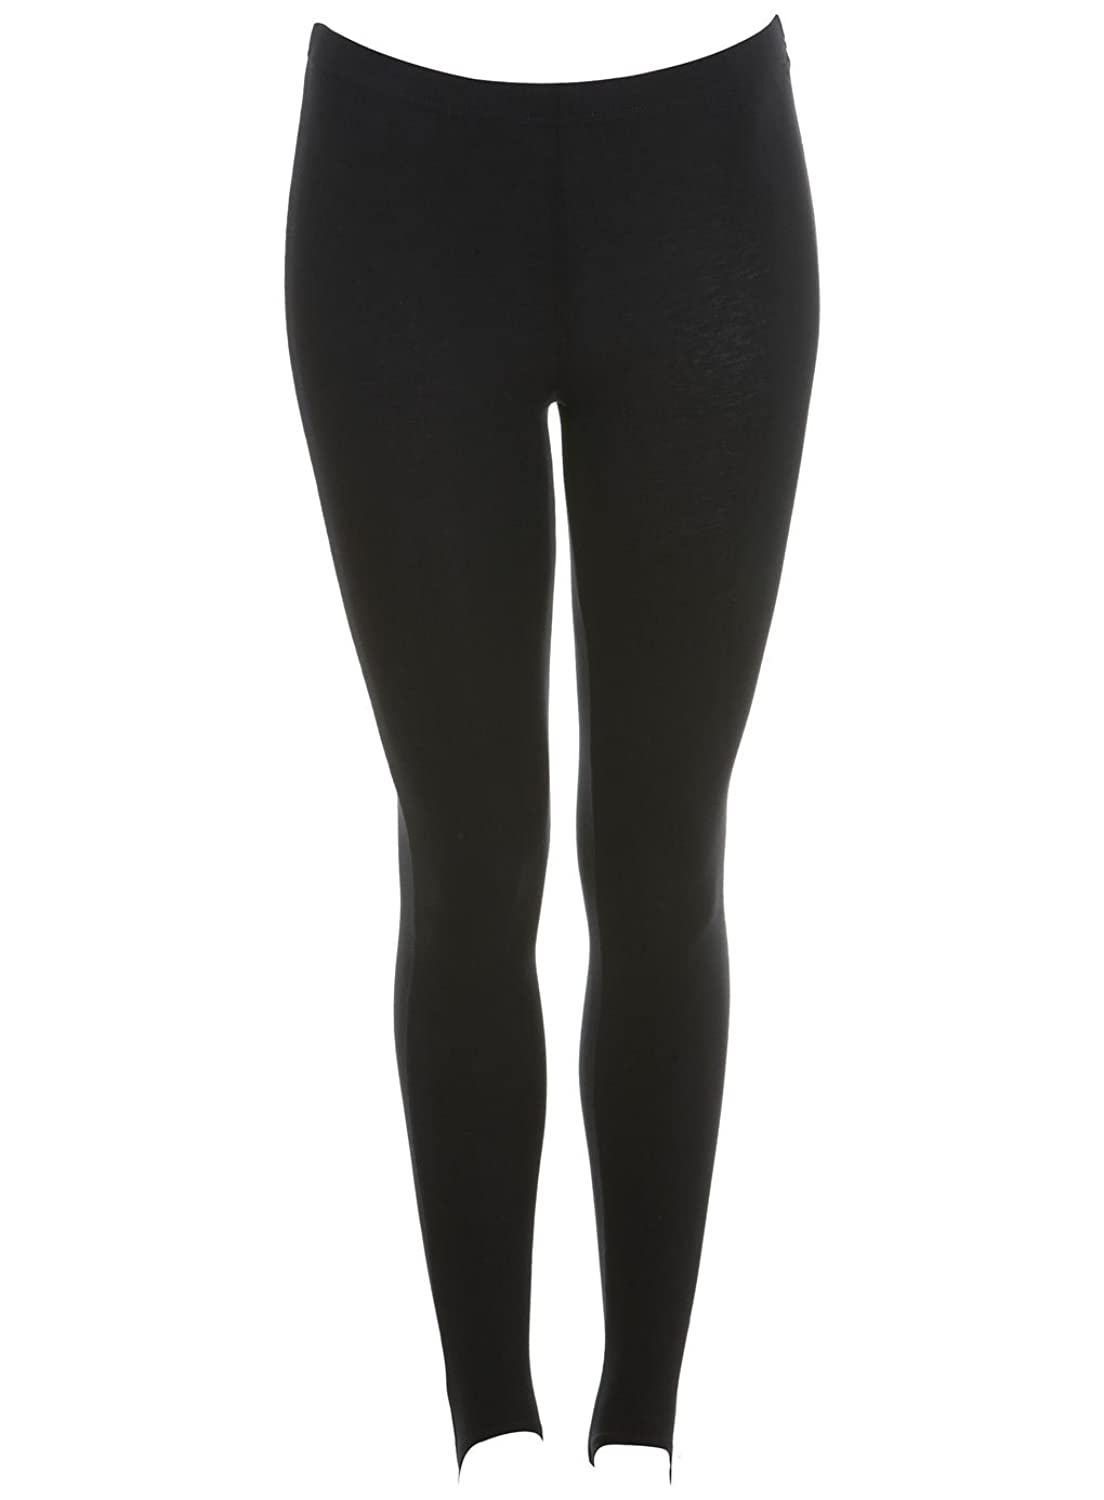 Damen Ski-Hosen Damen Steigbügel Stretch Winter Leggings by Love Lola® Schwarz